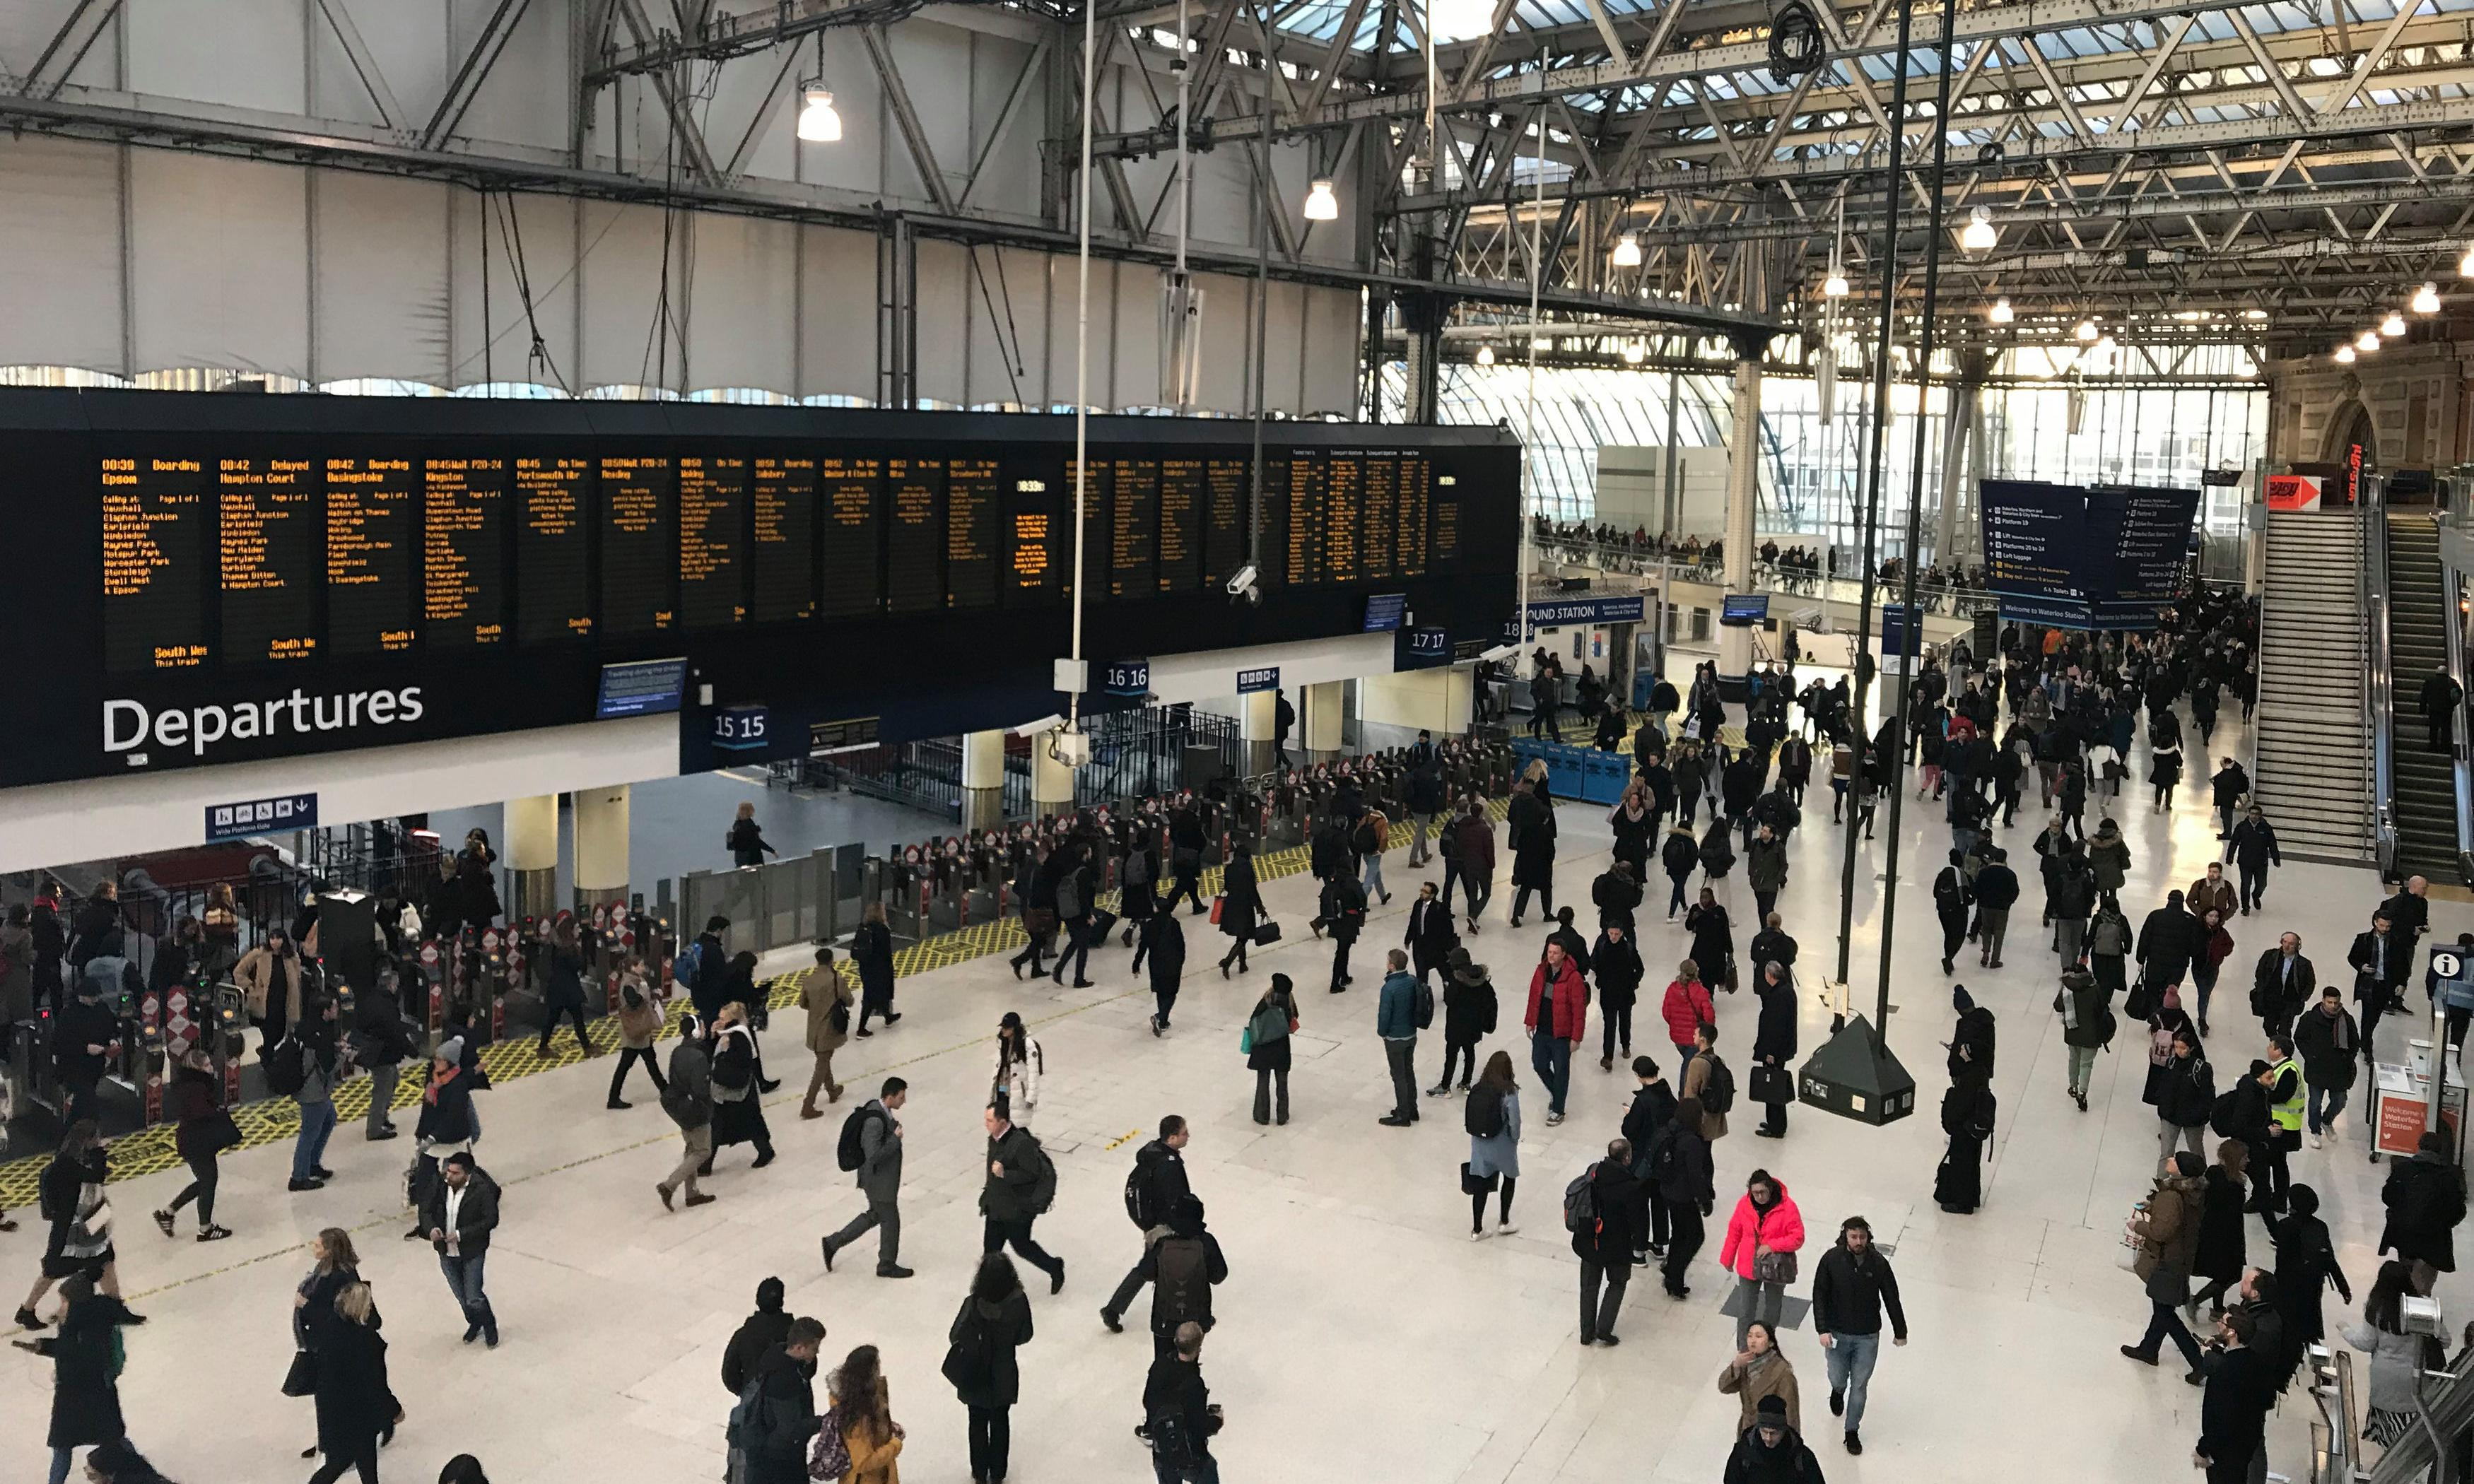 Rail passengers warned as new timetable comes into effect across UK